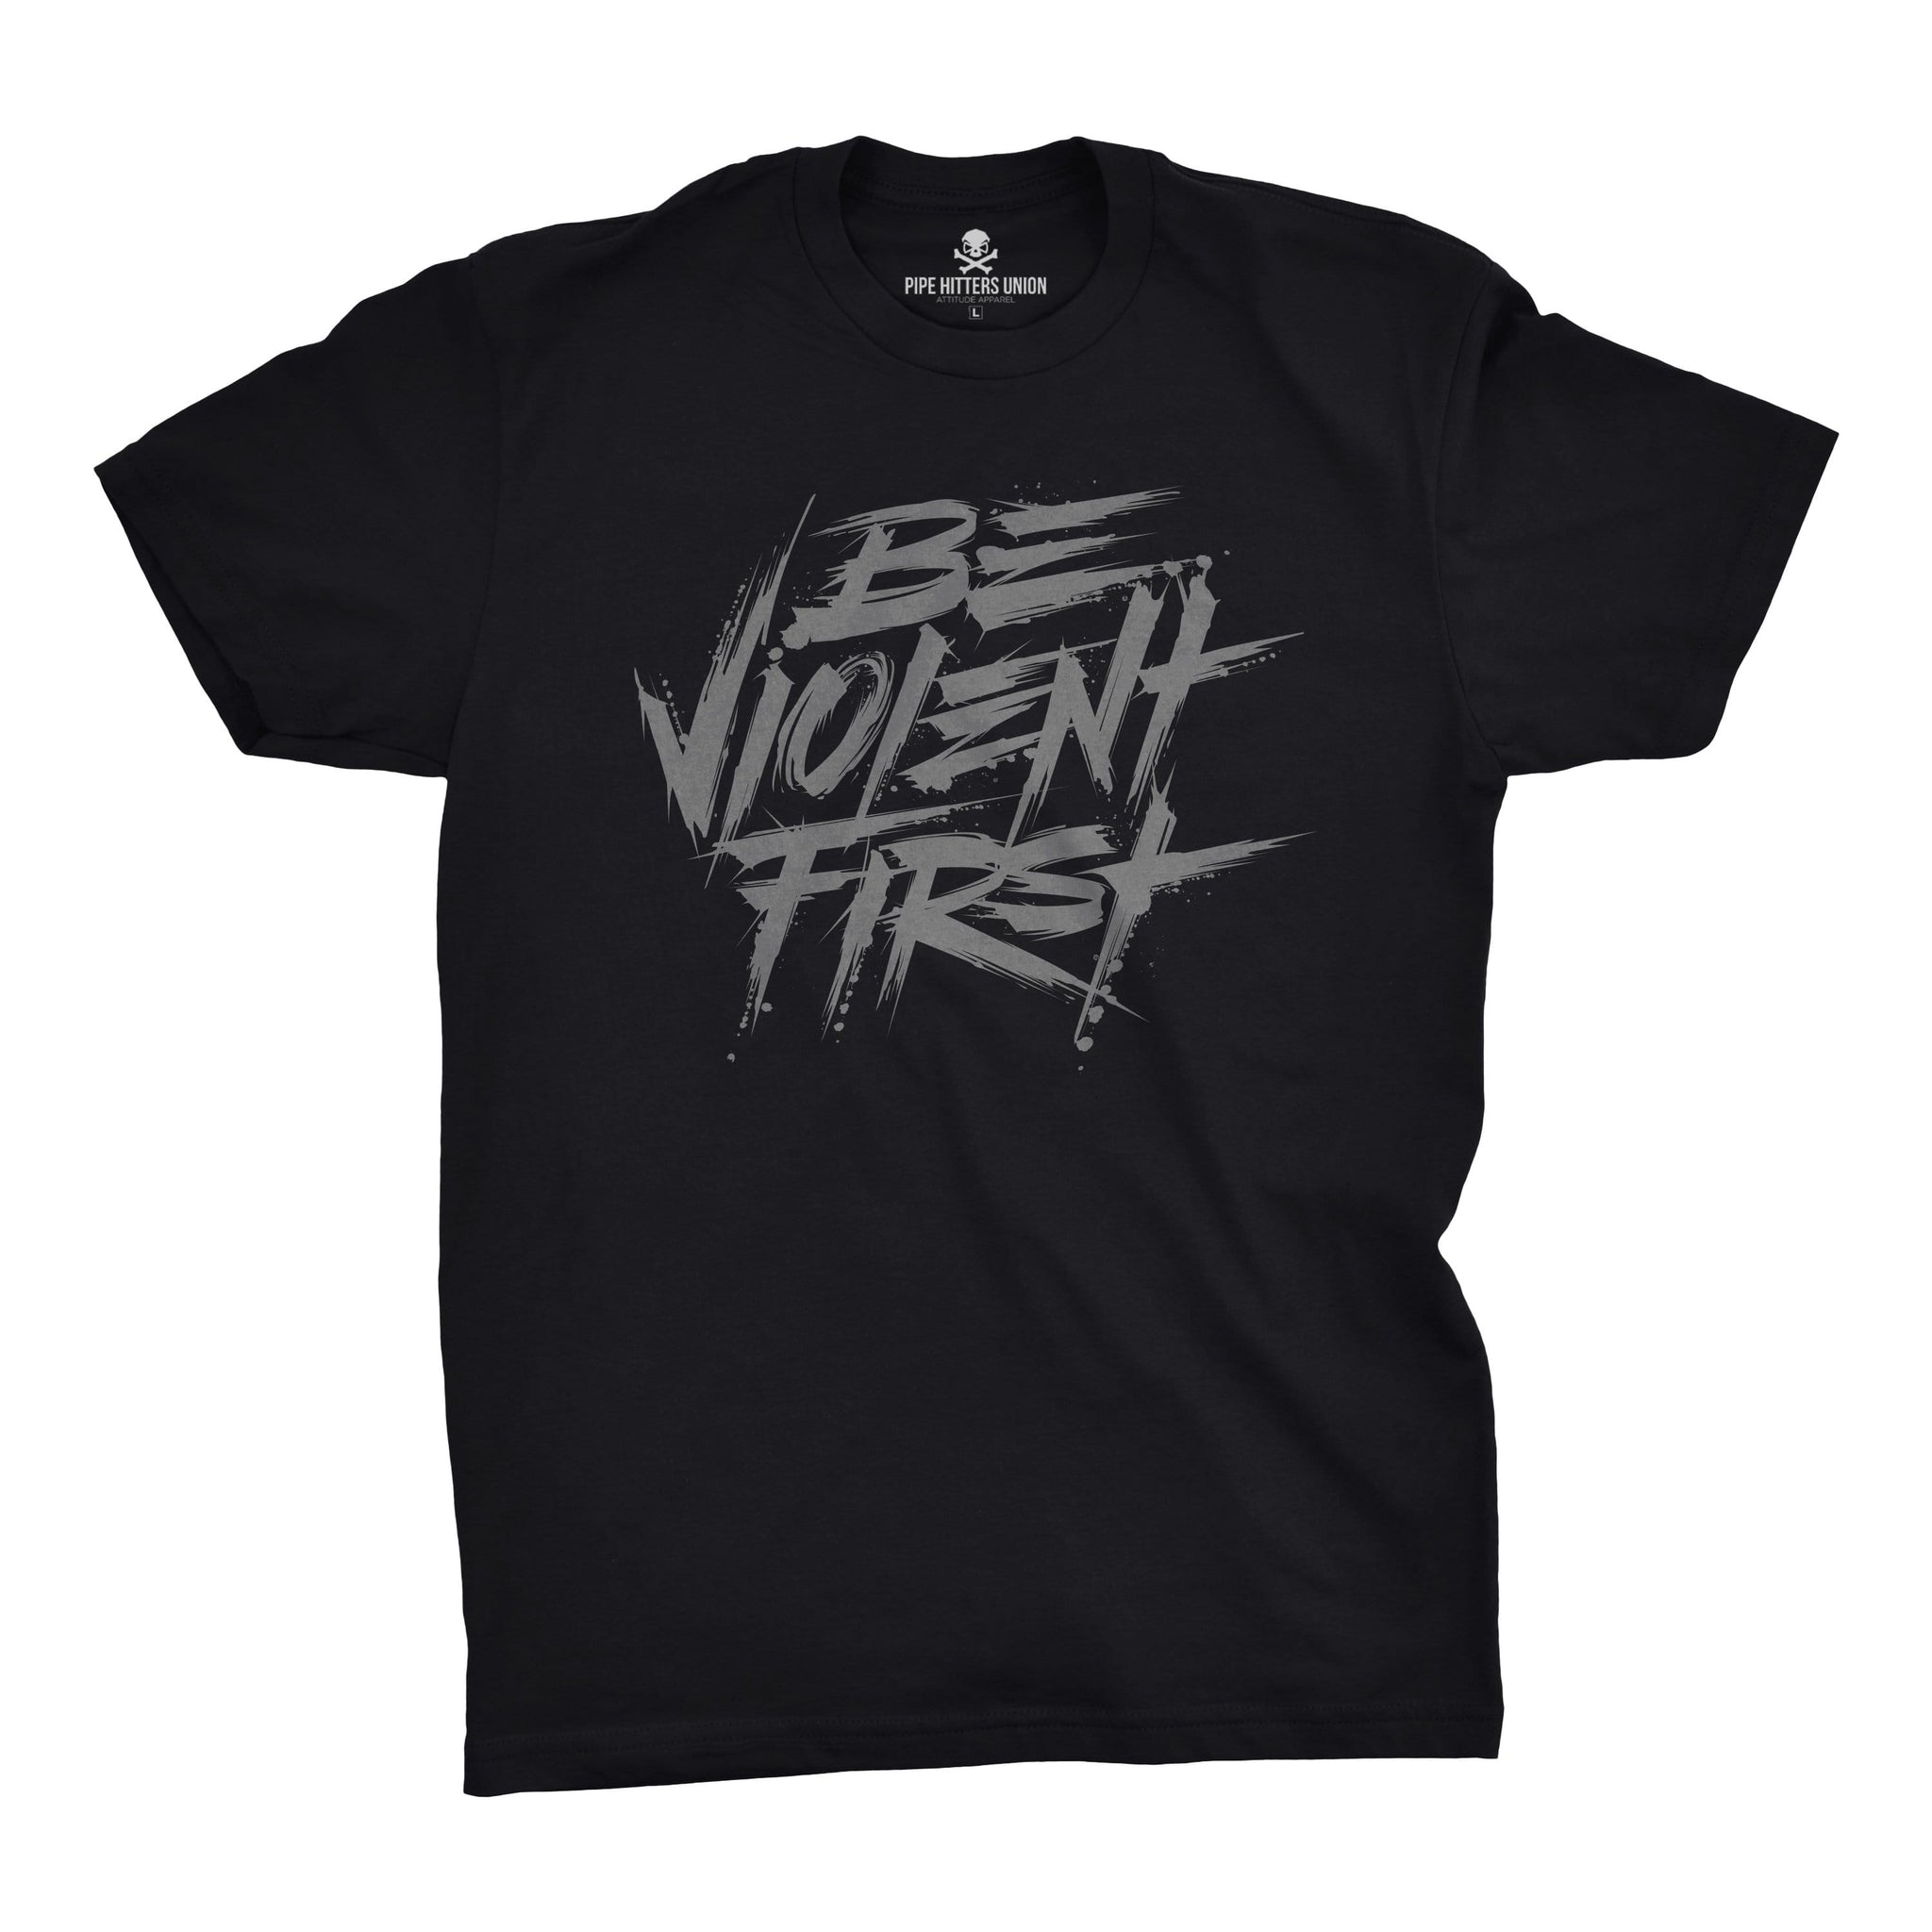 Be Violent First - Black/Grey - T-Shirts - Pipe Hitters Union